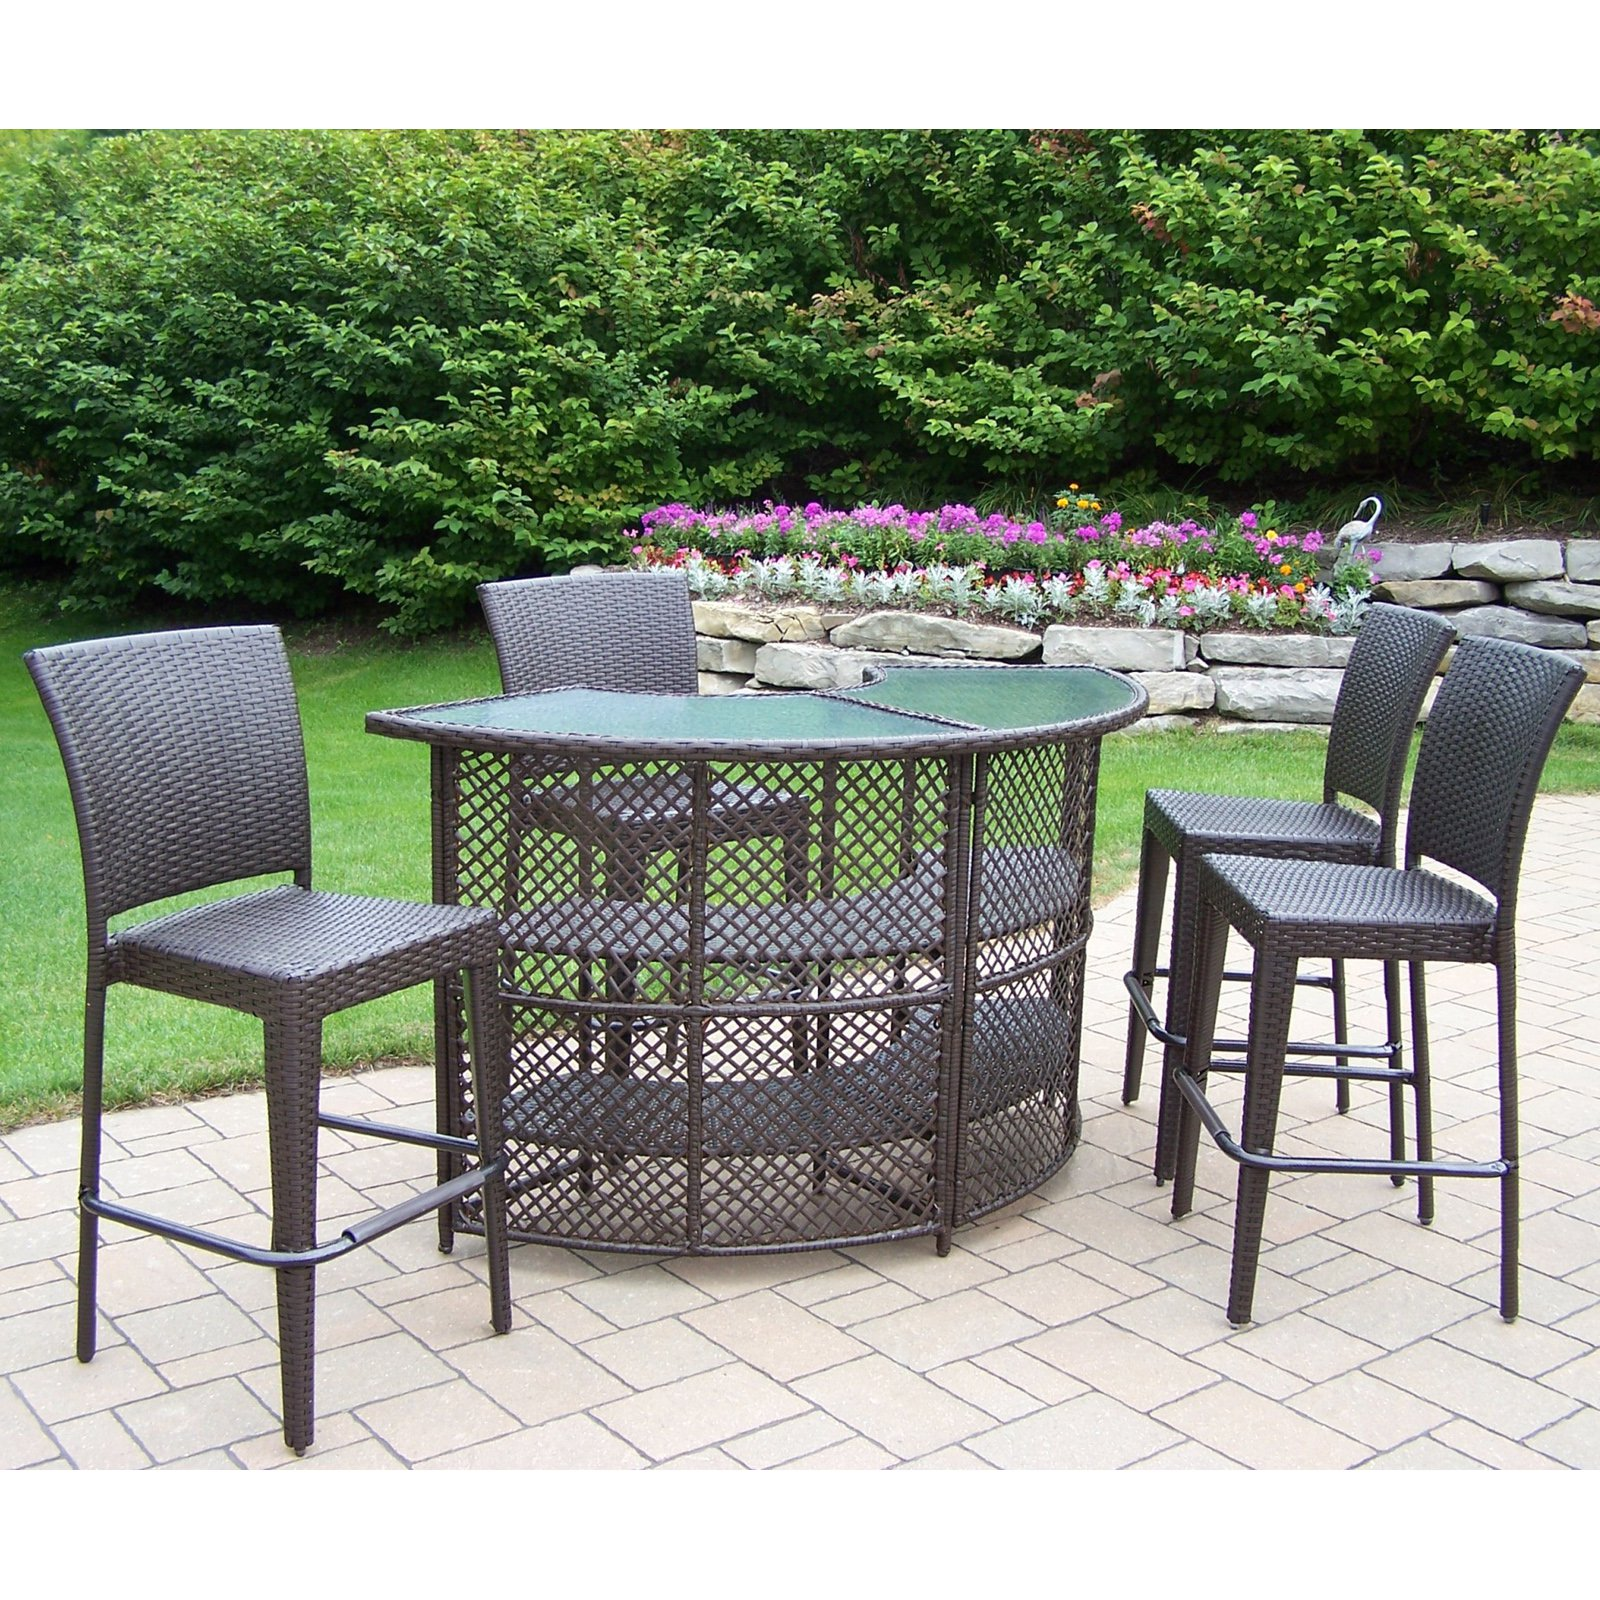 oakland living all weather wicker half round patio bar set - FHFJZDG